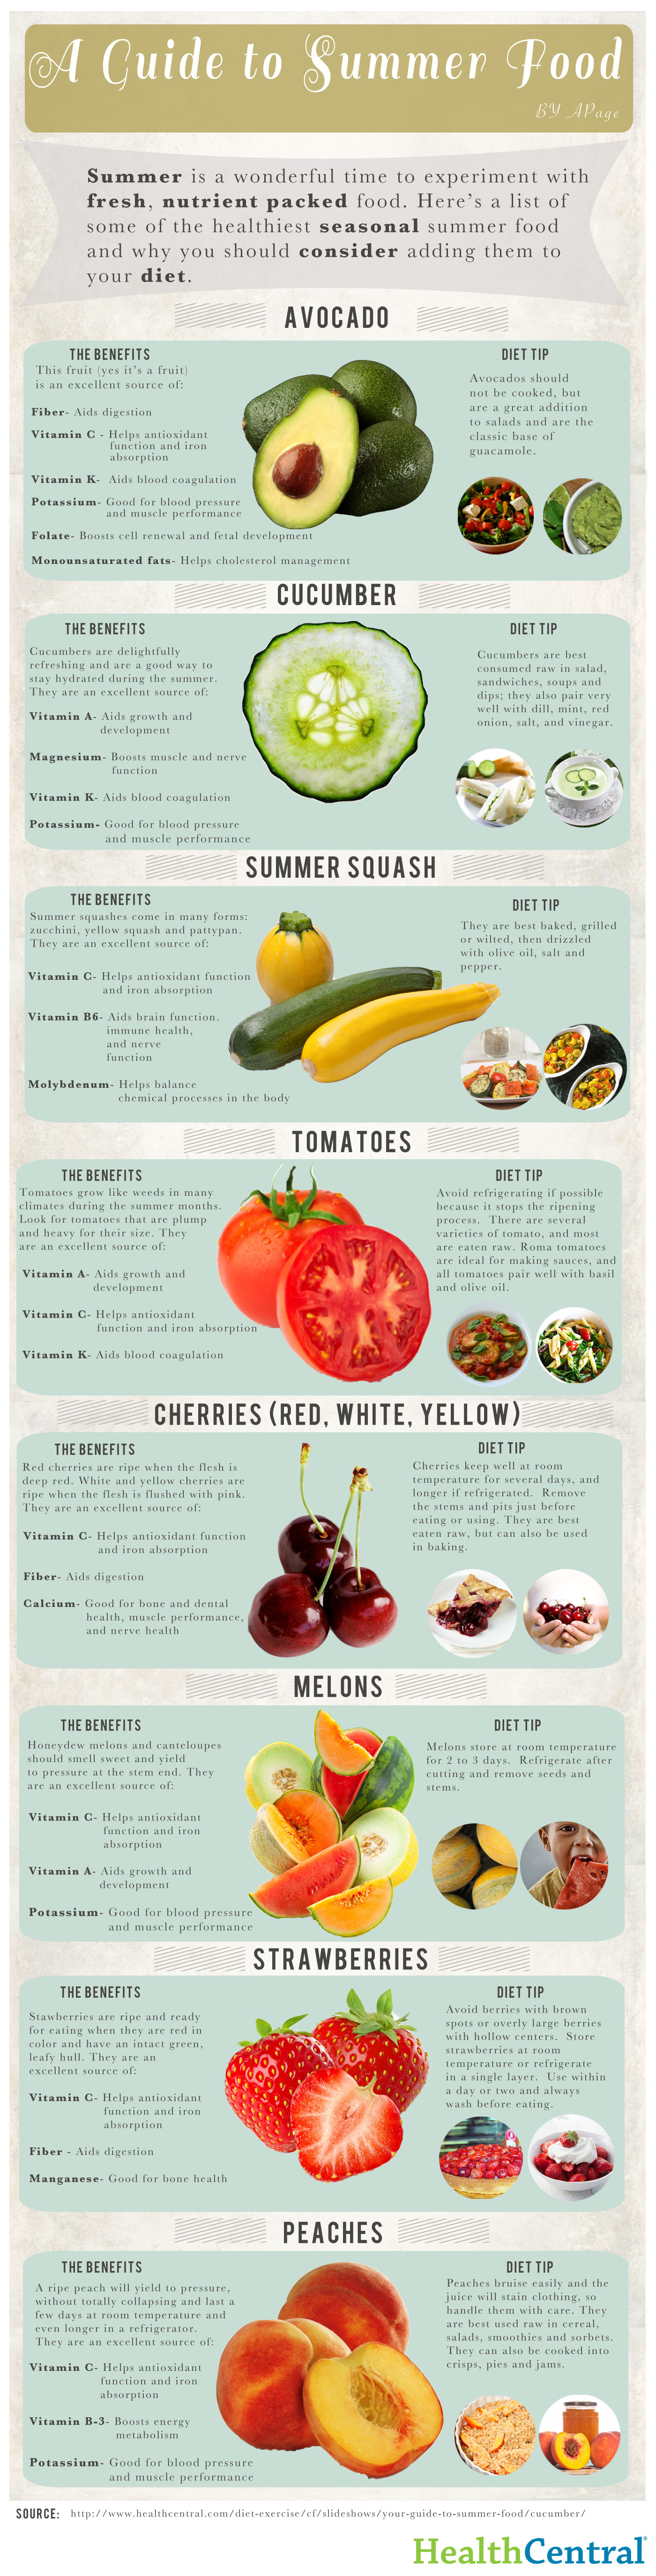 a-guide-to-summer-food_520536dbeccfe